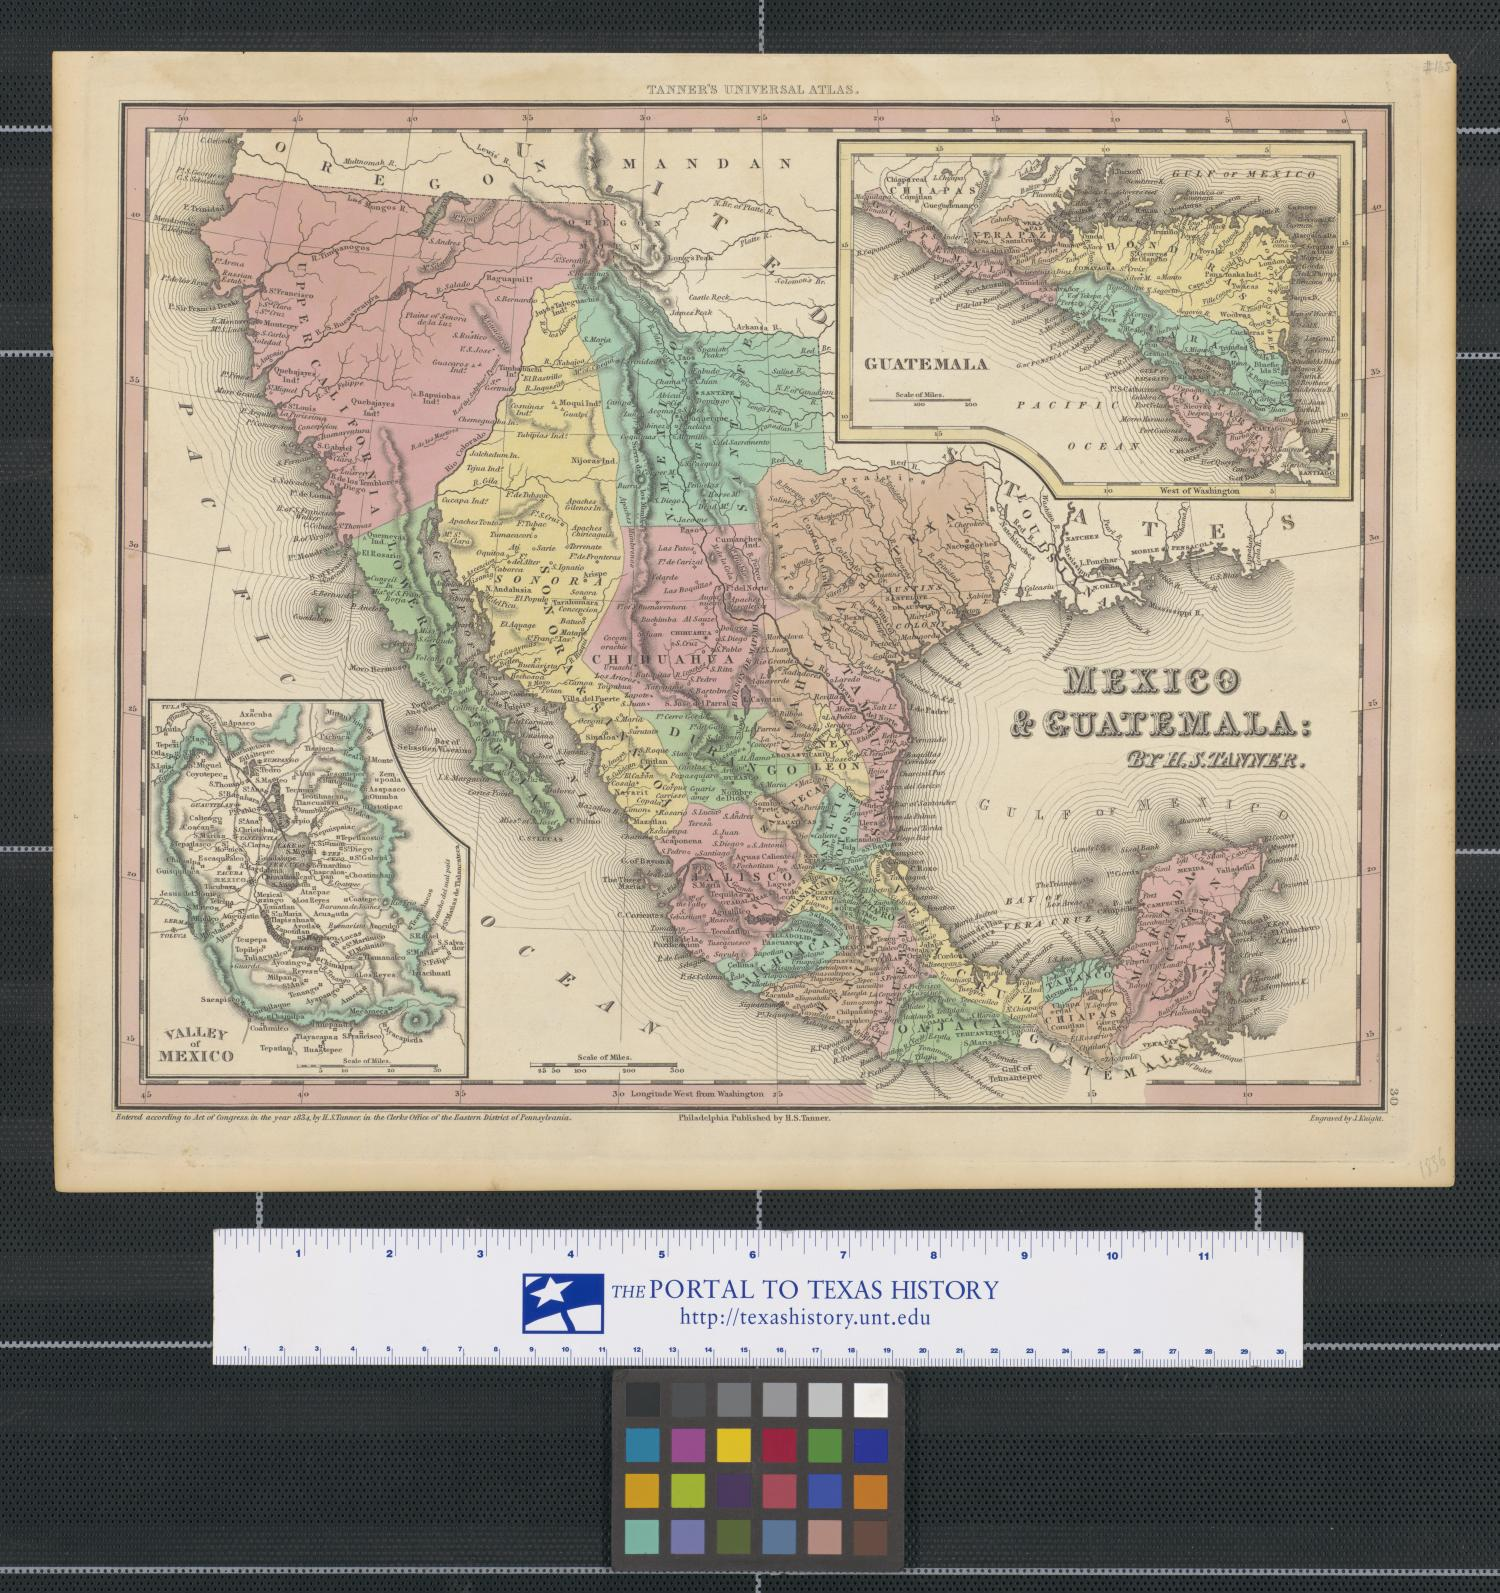 Map Of Texas 4 Regions Labeled.Mexico Guatemala The Portal To Texas History